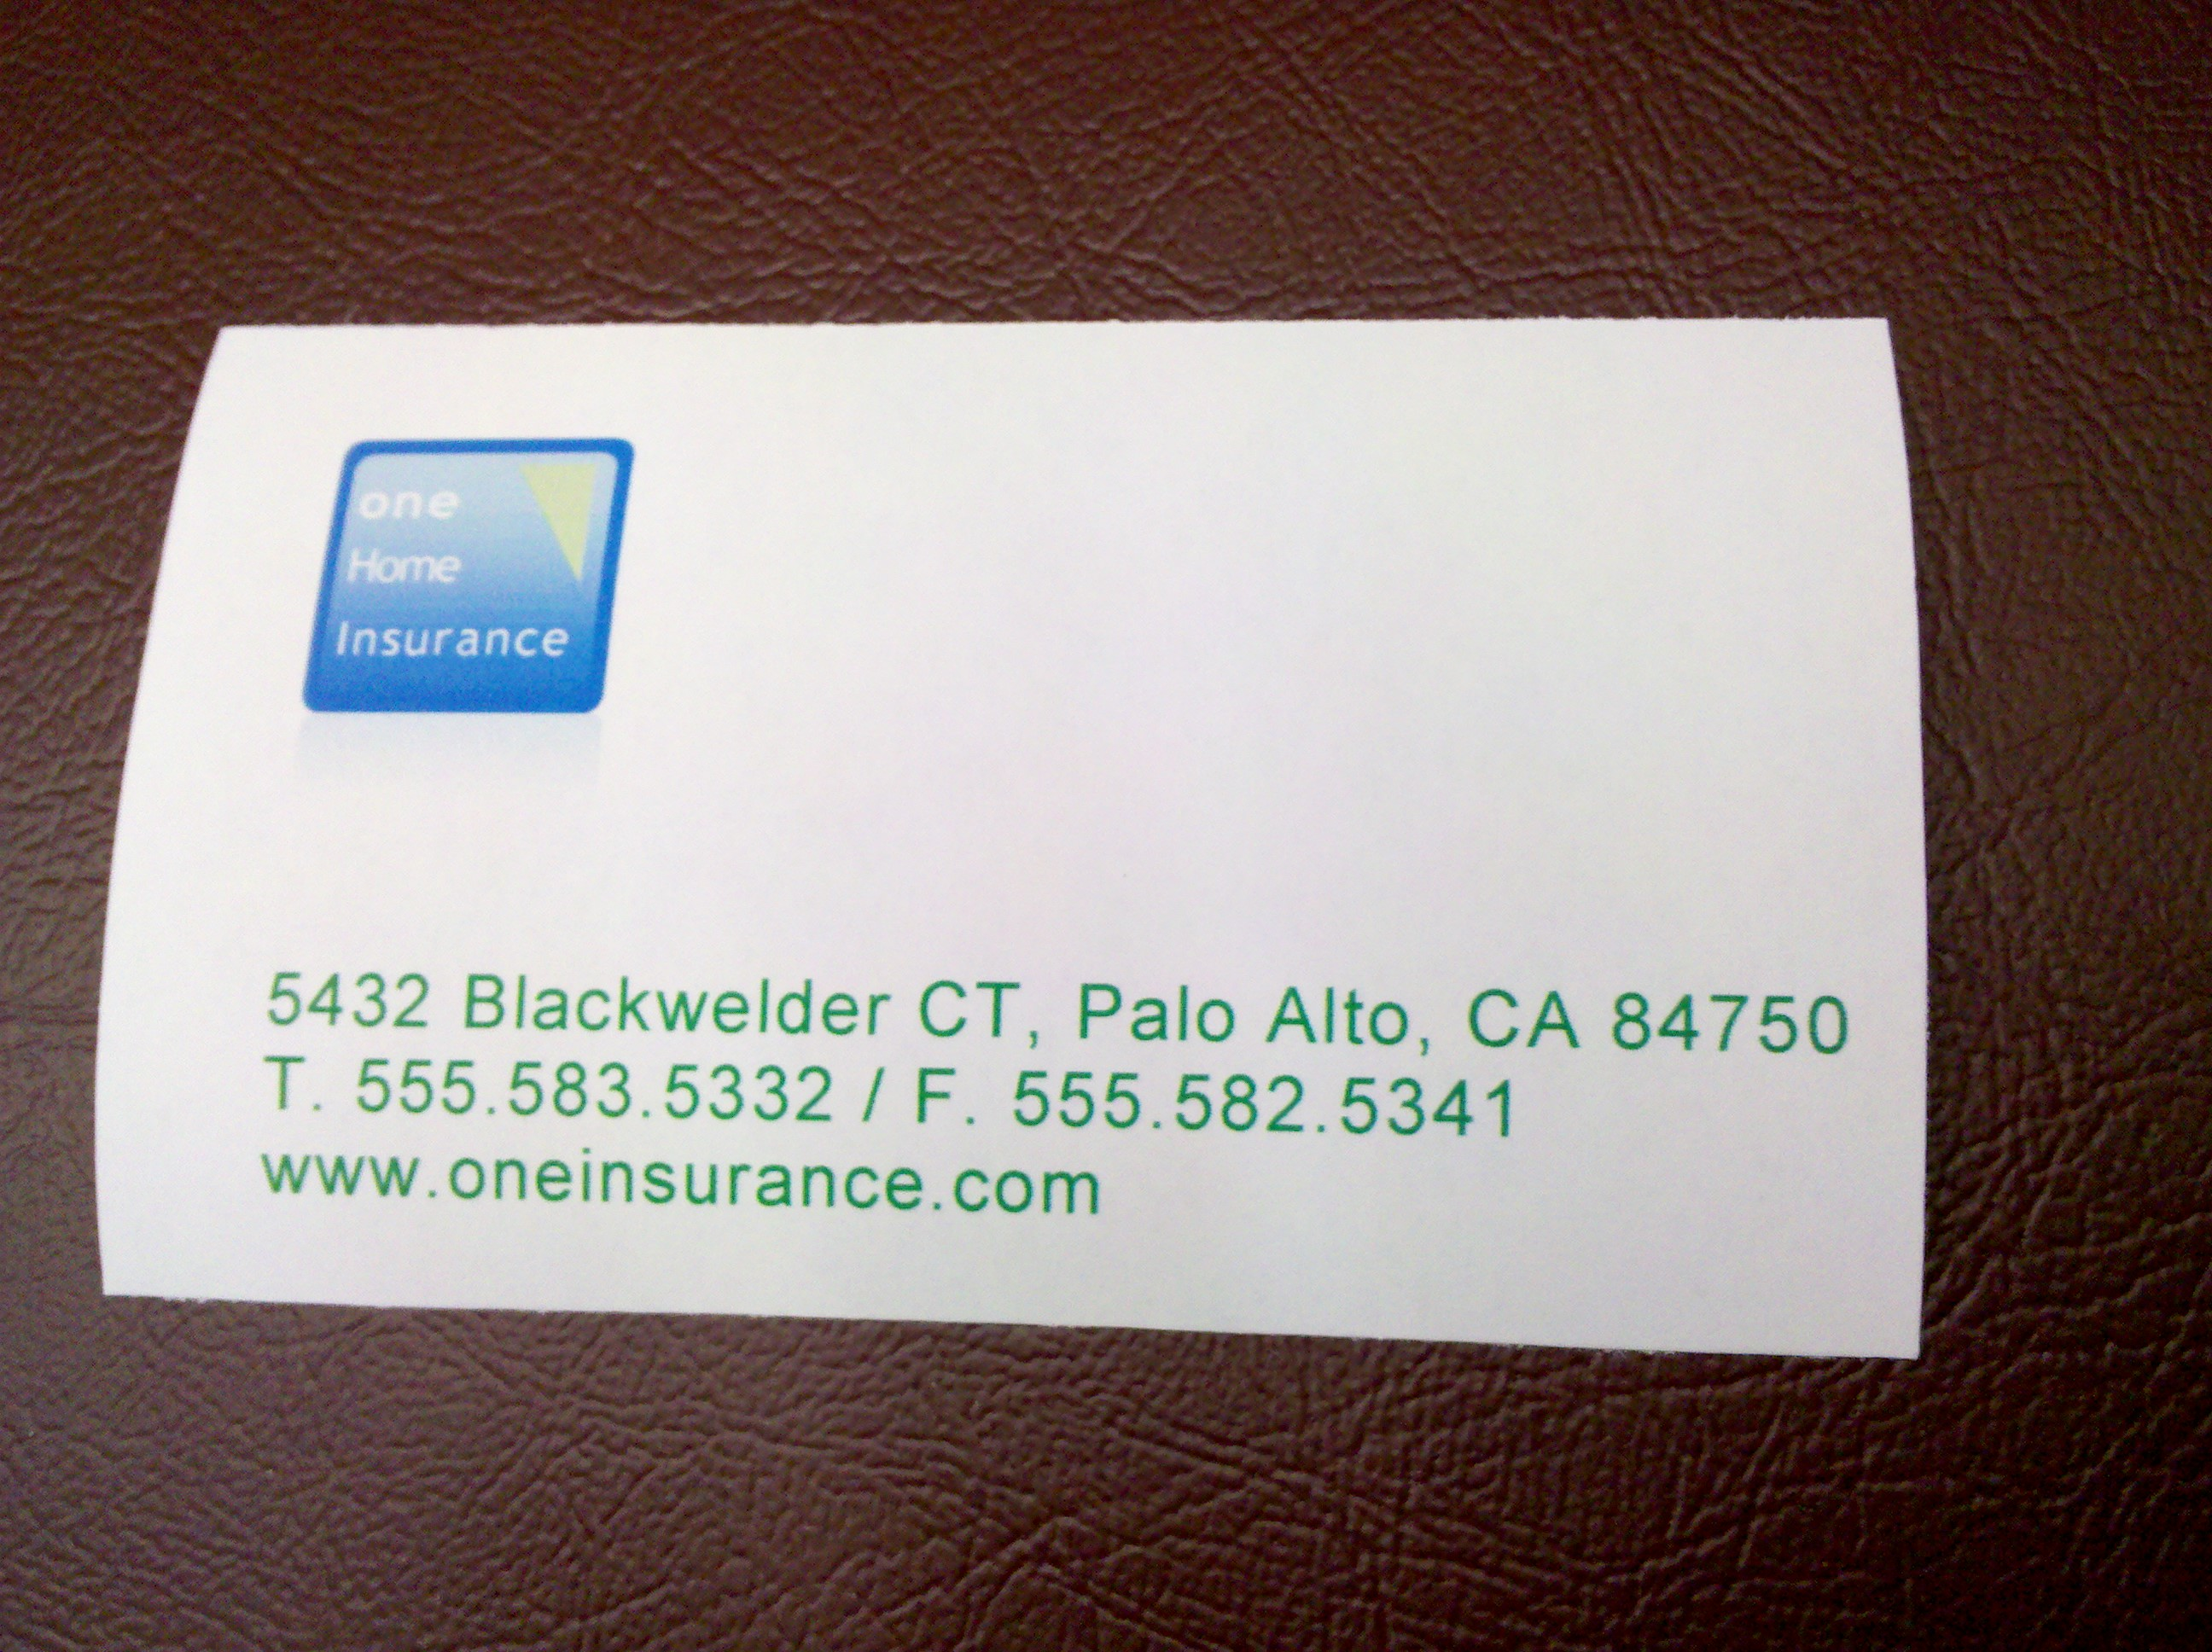 Stanford Mobile Visual Search Data Set: Business Cards